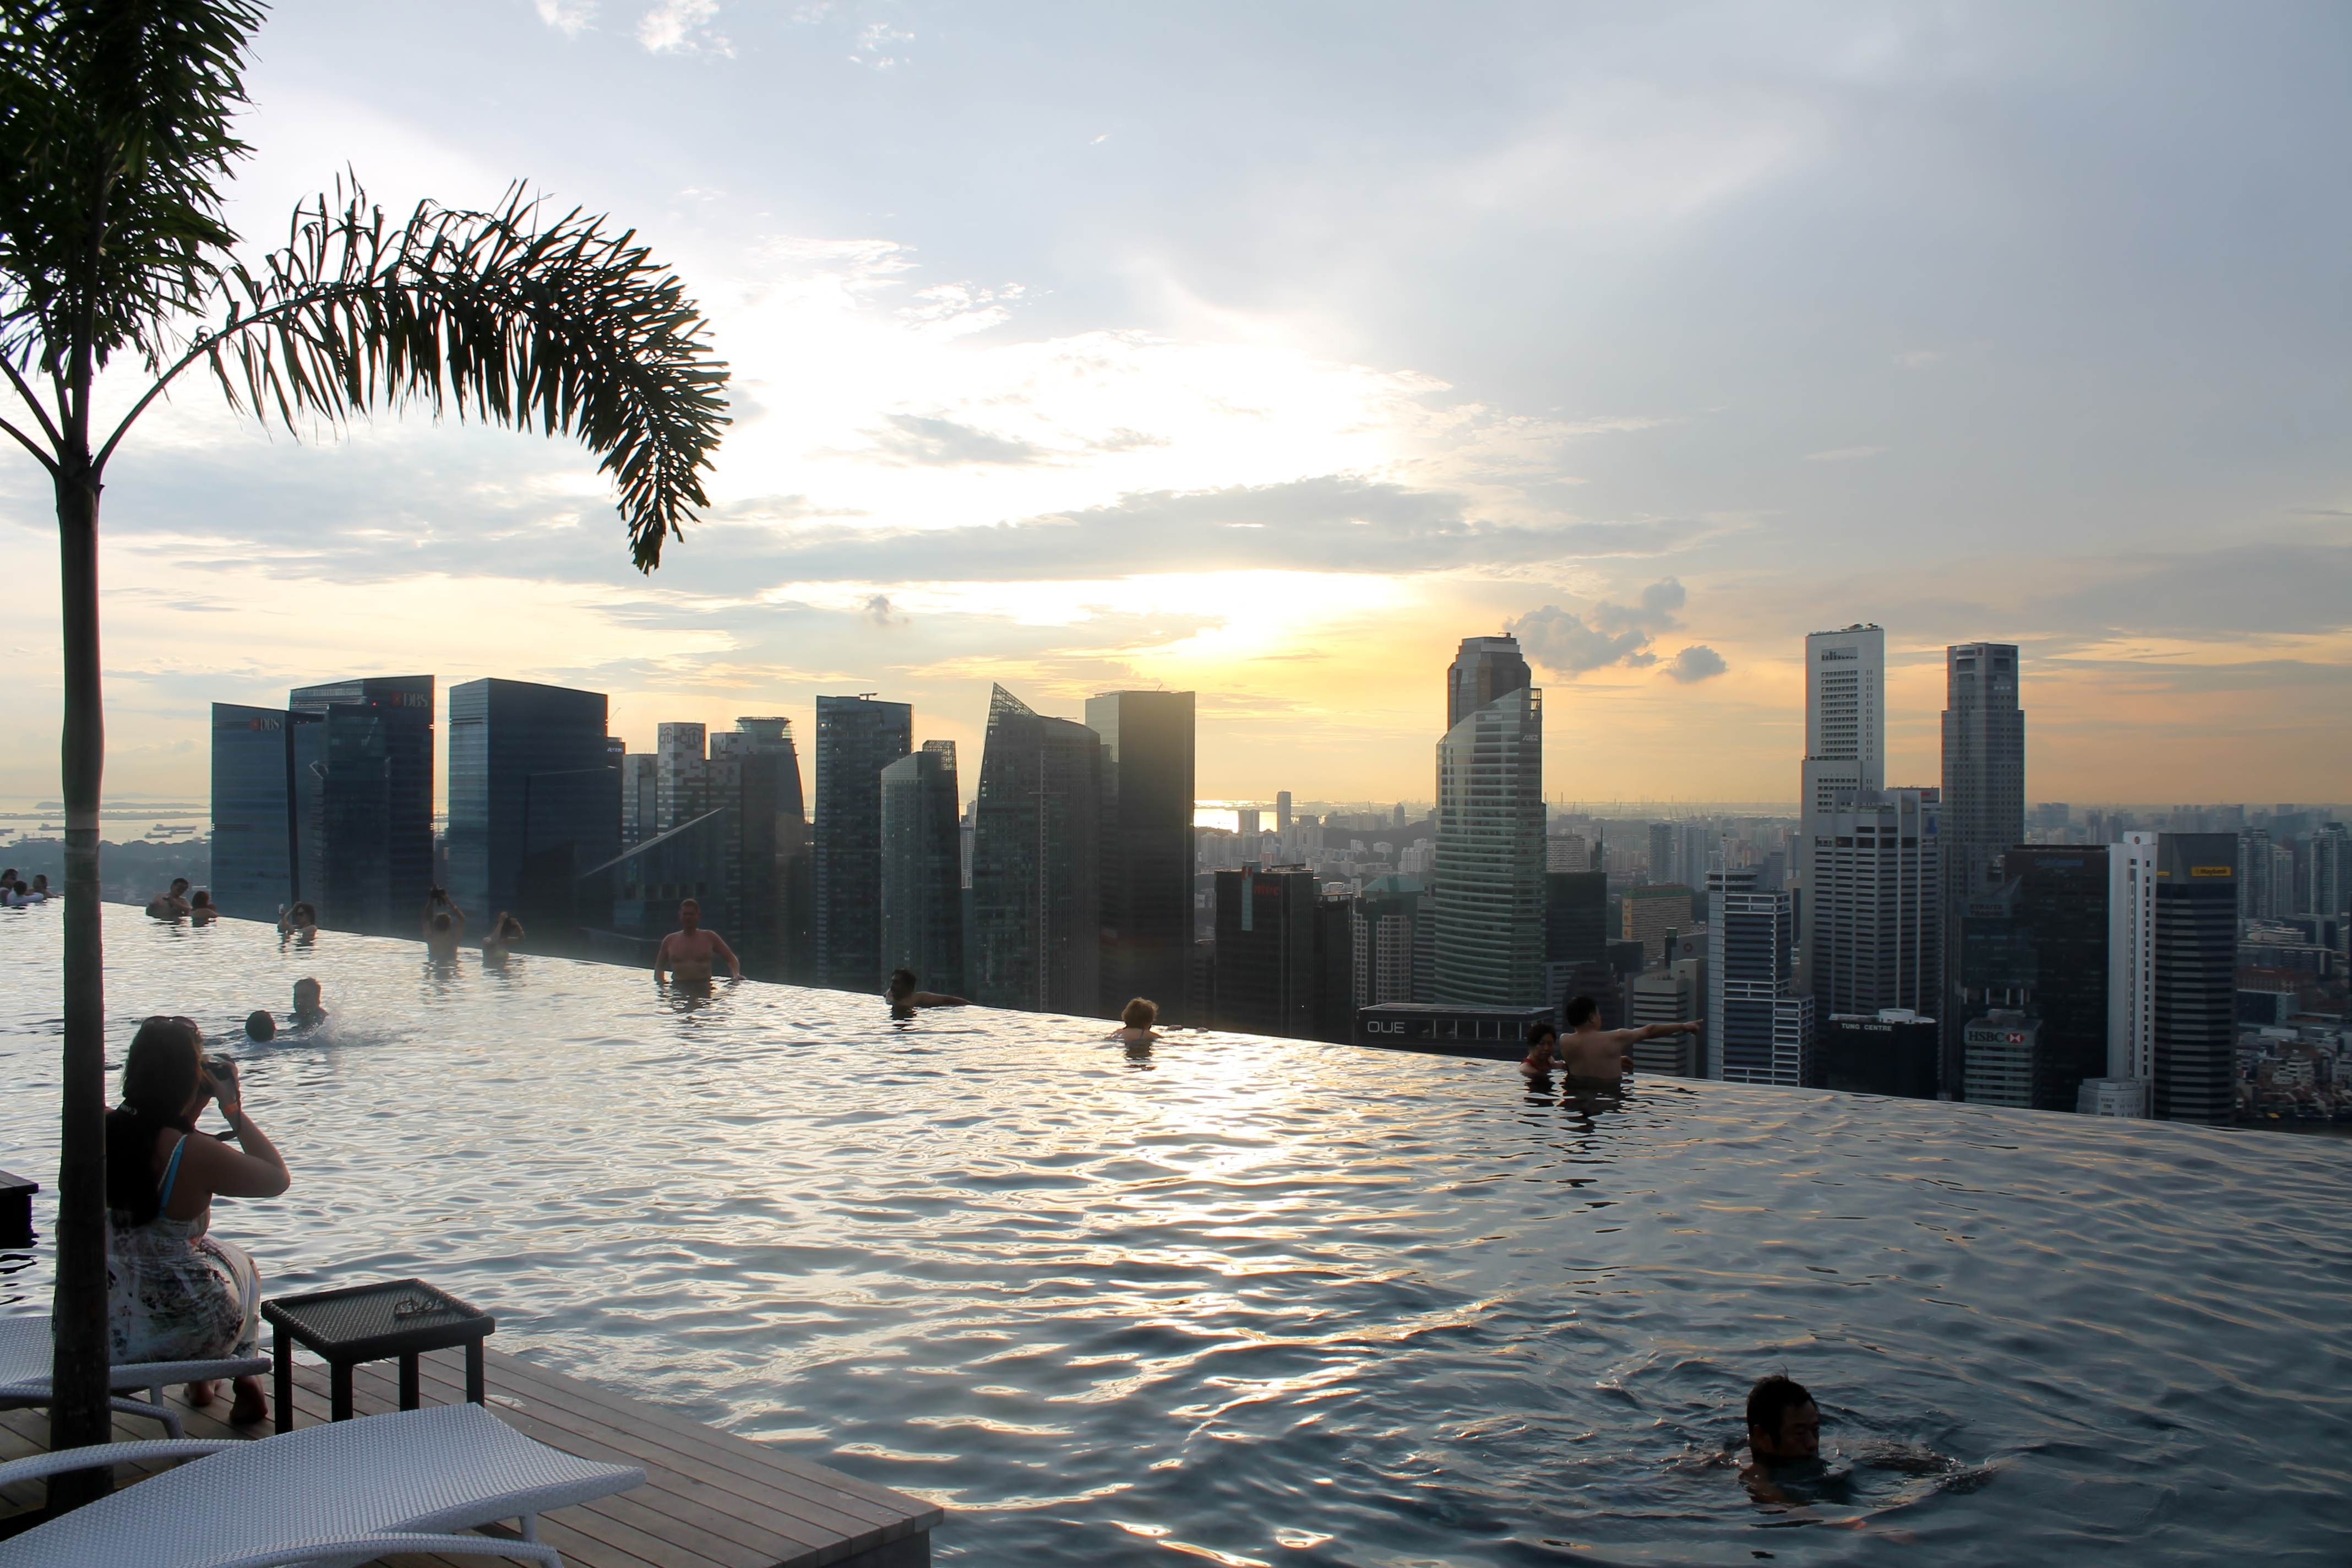 Review marina bay sands hotel a landmark in singapore for Marina bay sands swimming pool entrance fee